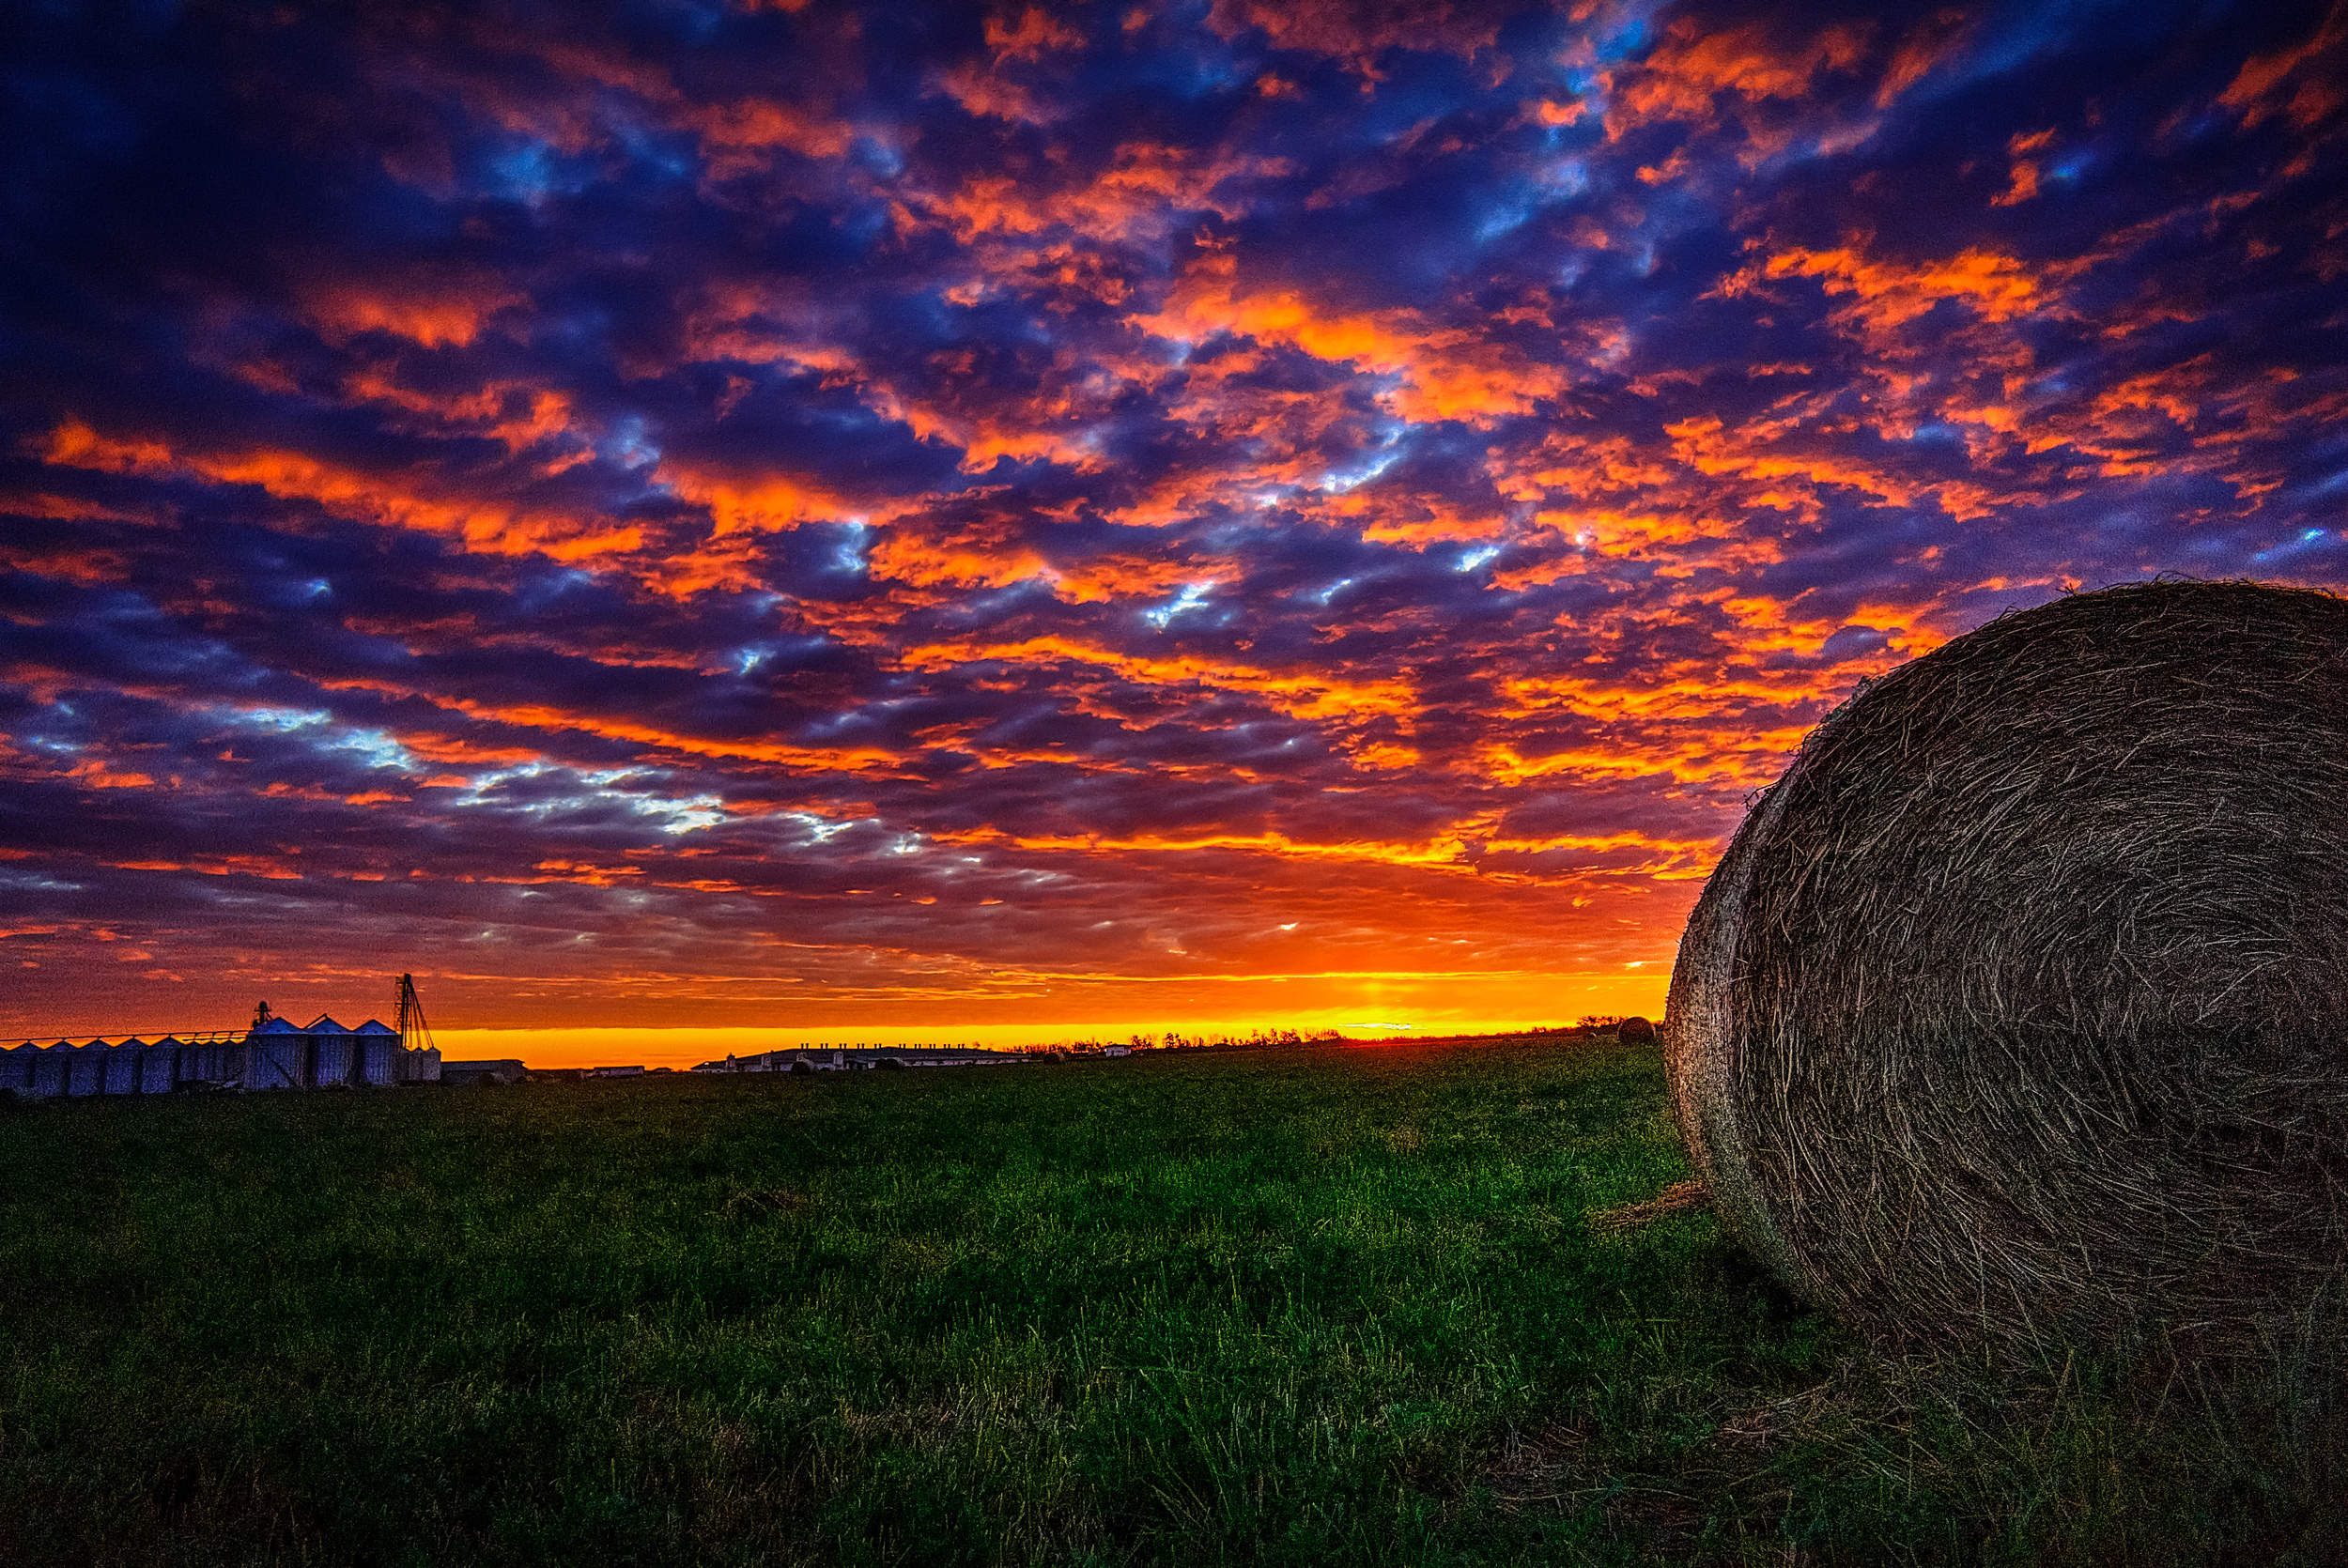 sunrise hay roll field.jpg